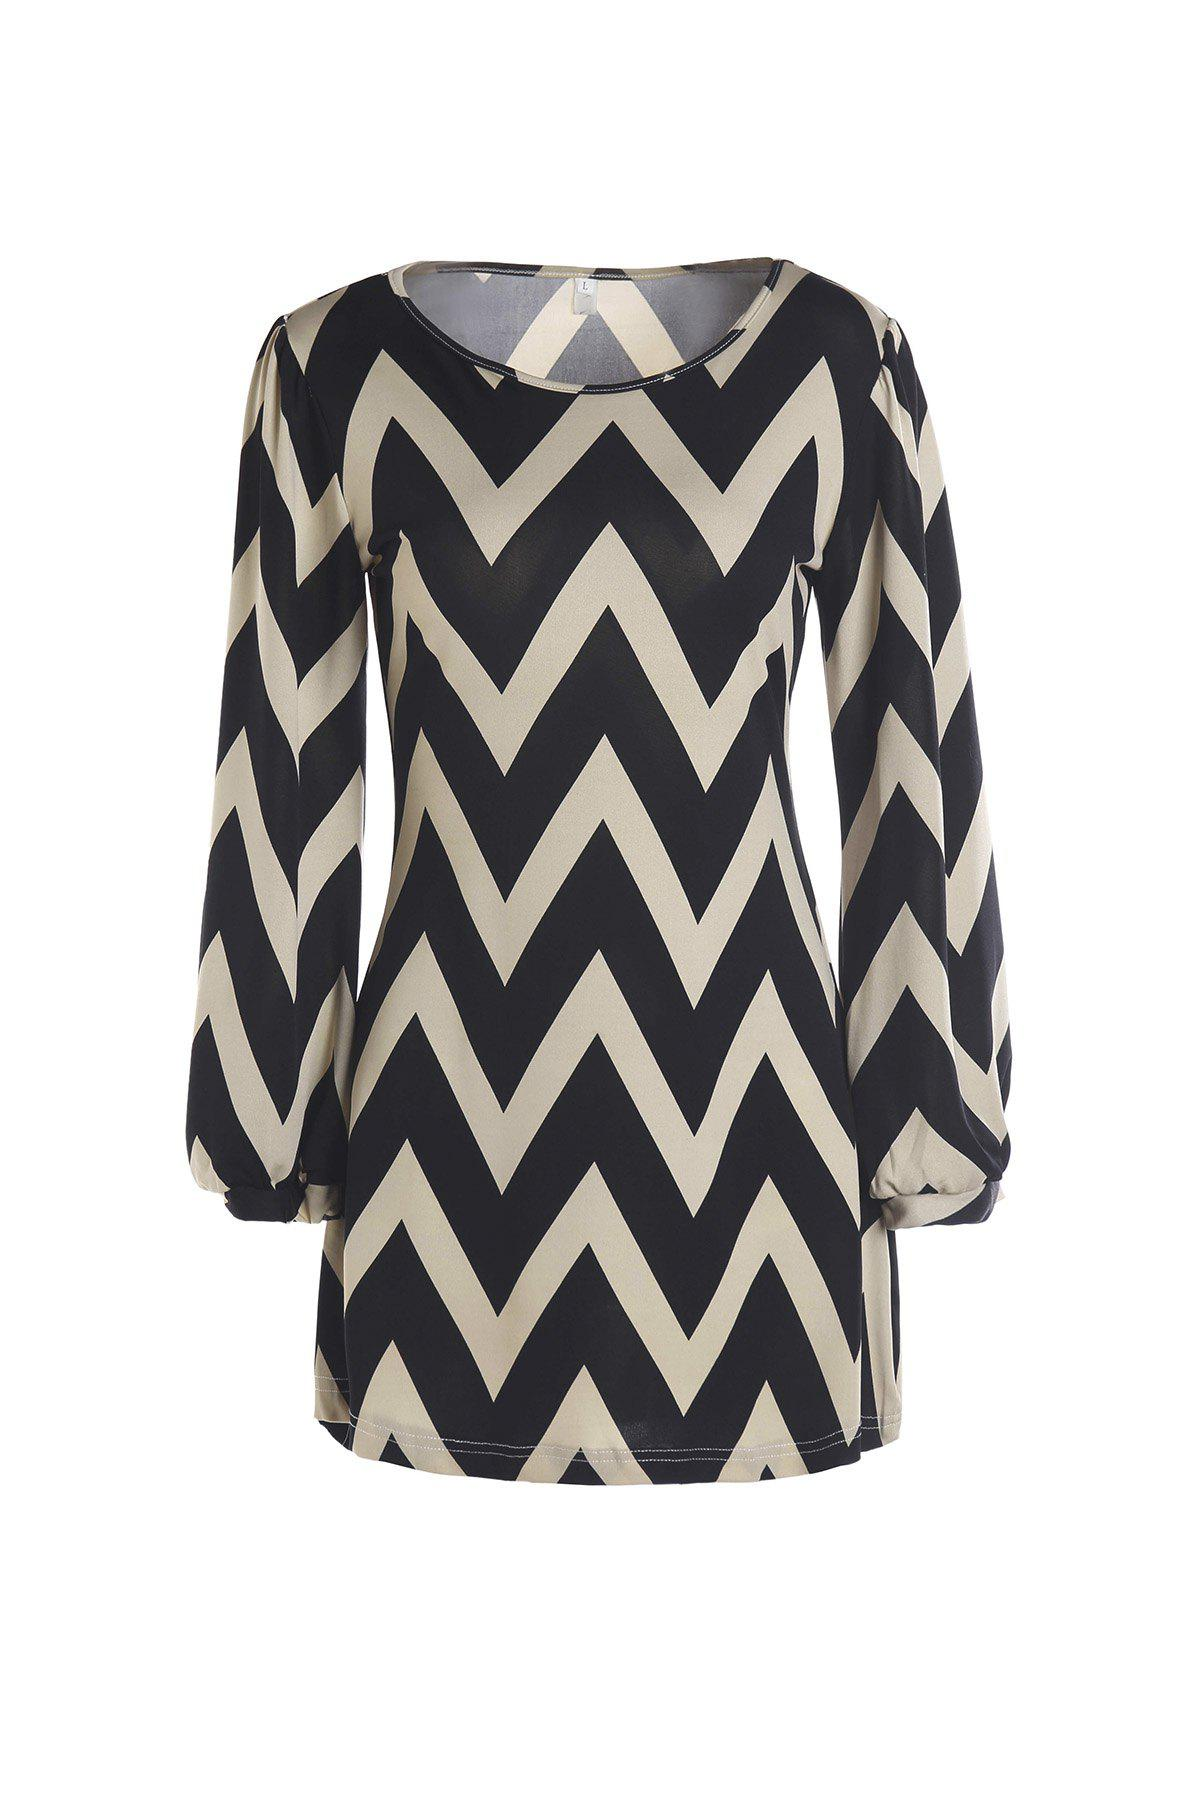 Full Sleeve Zig Zag Dress - KHAKI XL